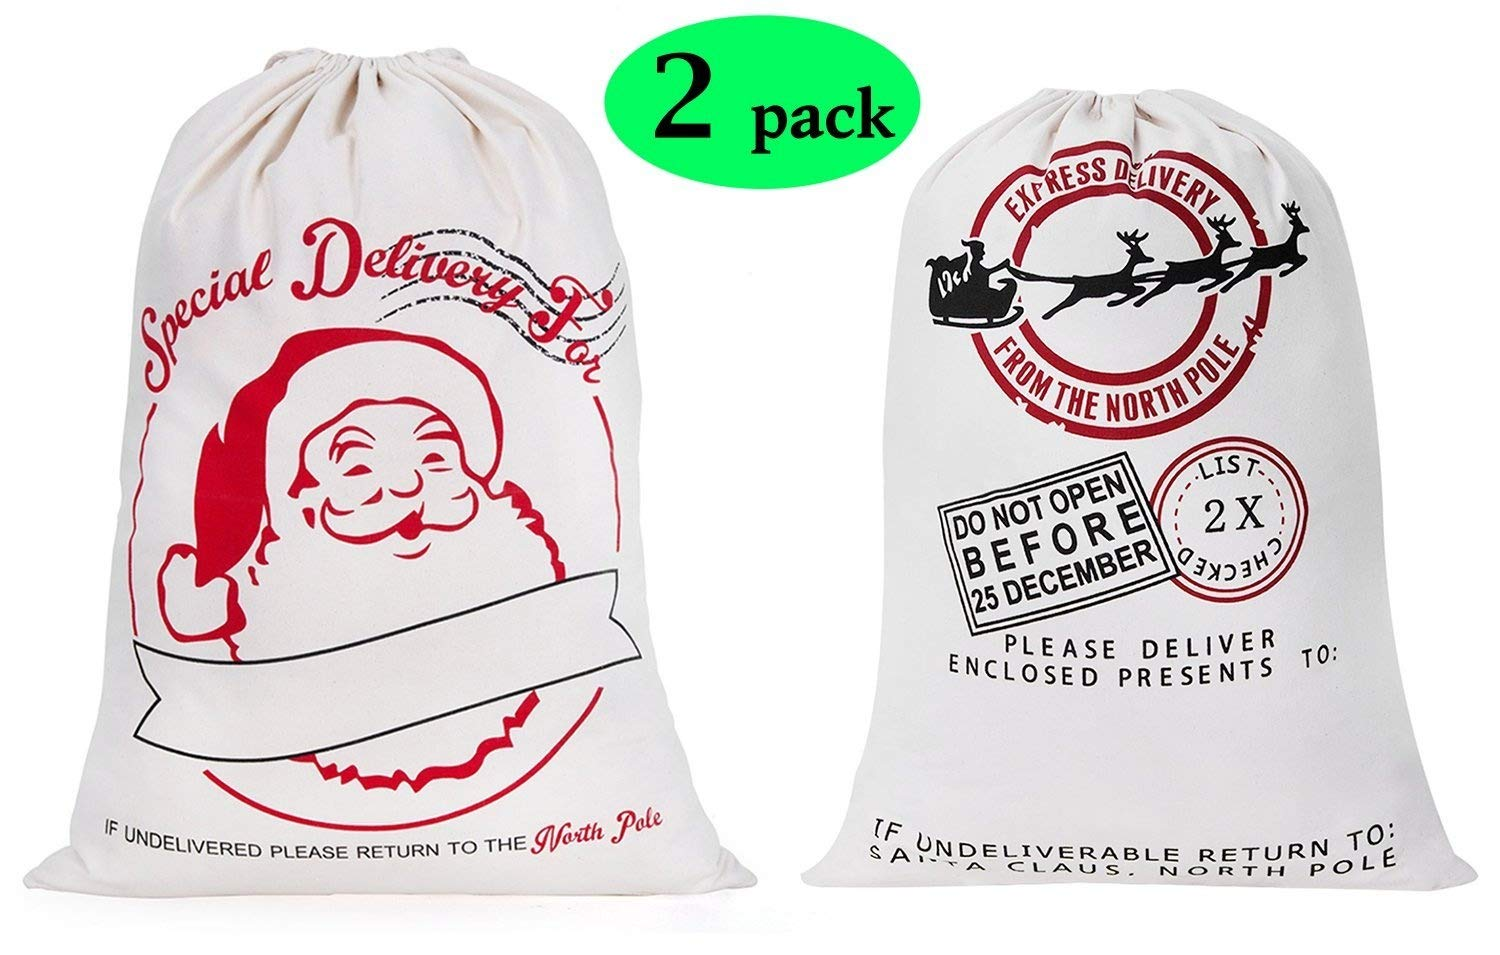 2 Pack Large Santa Sack Christmas Gift Bag with Drawstring 19.7 x 27.6 Inch for Storing Christmas Presents & Holiday Gifts Halloween Deal